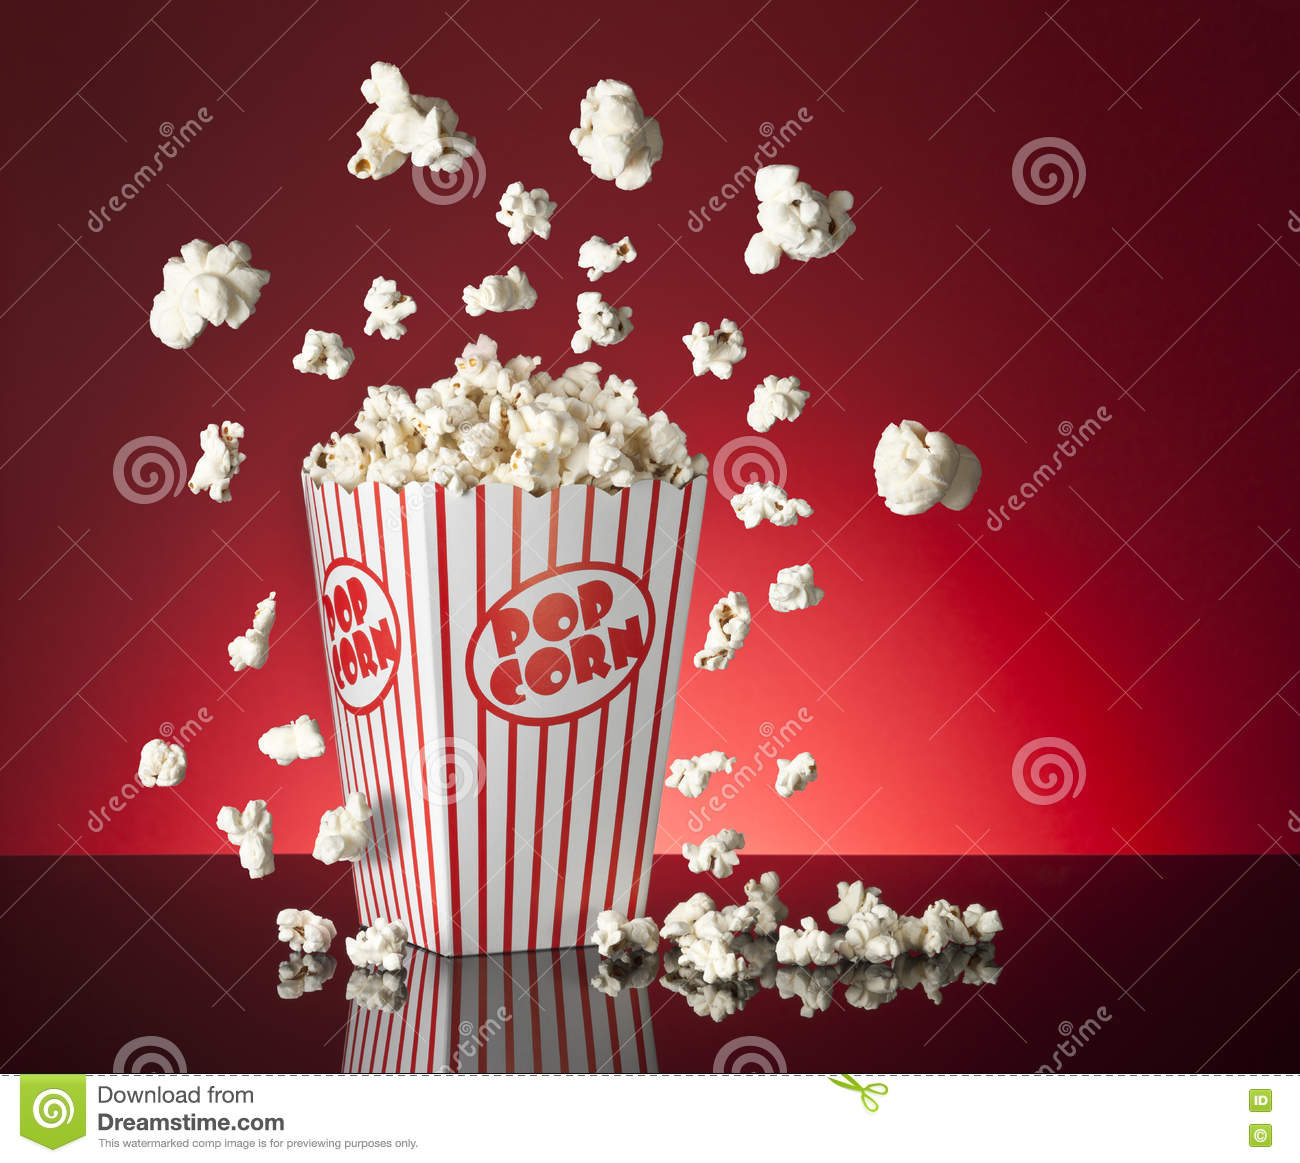 Popcorn Wallpaper: Popcorn Red Background Stock Image. Image Of Event